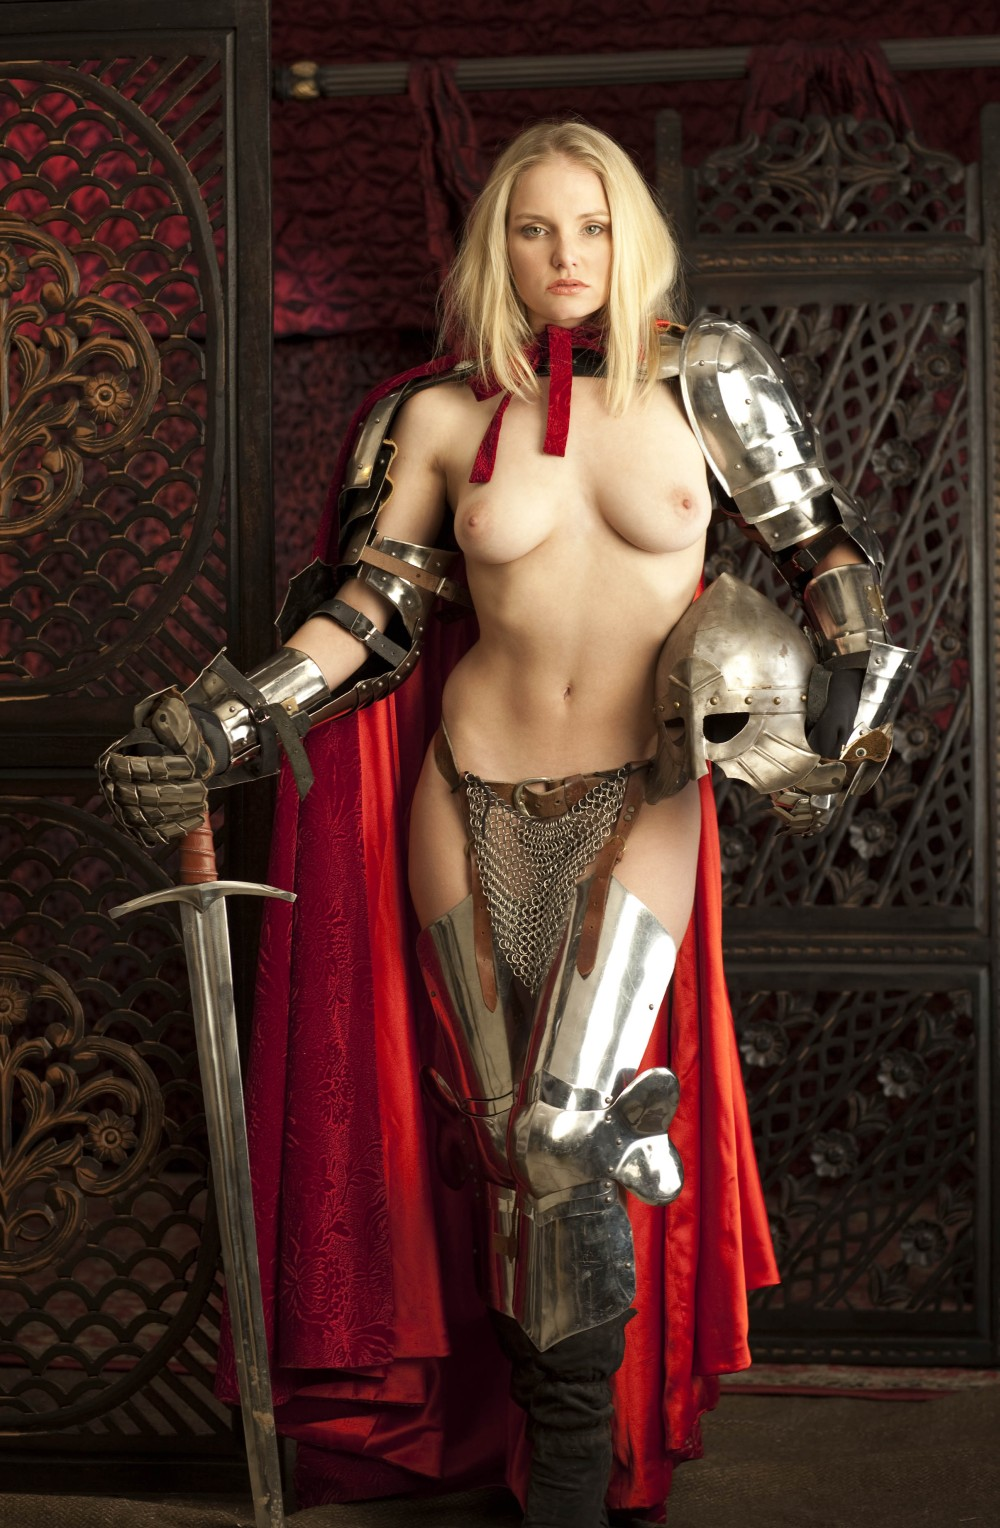 Sexy naked girl armor video xxx online butt